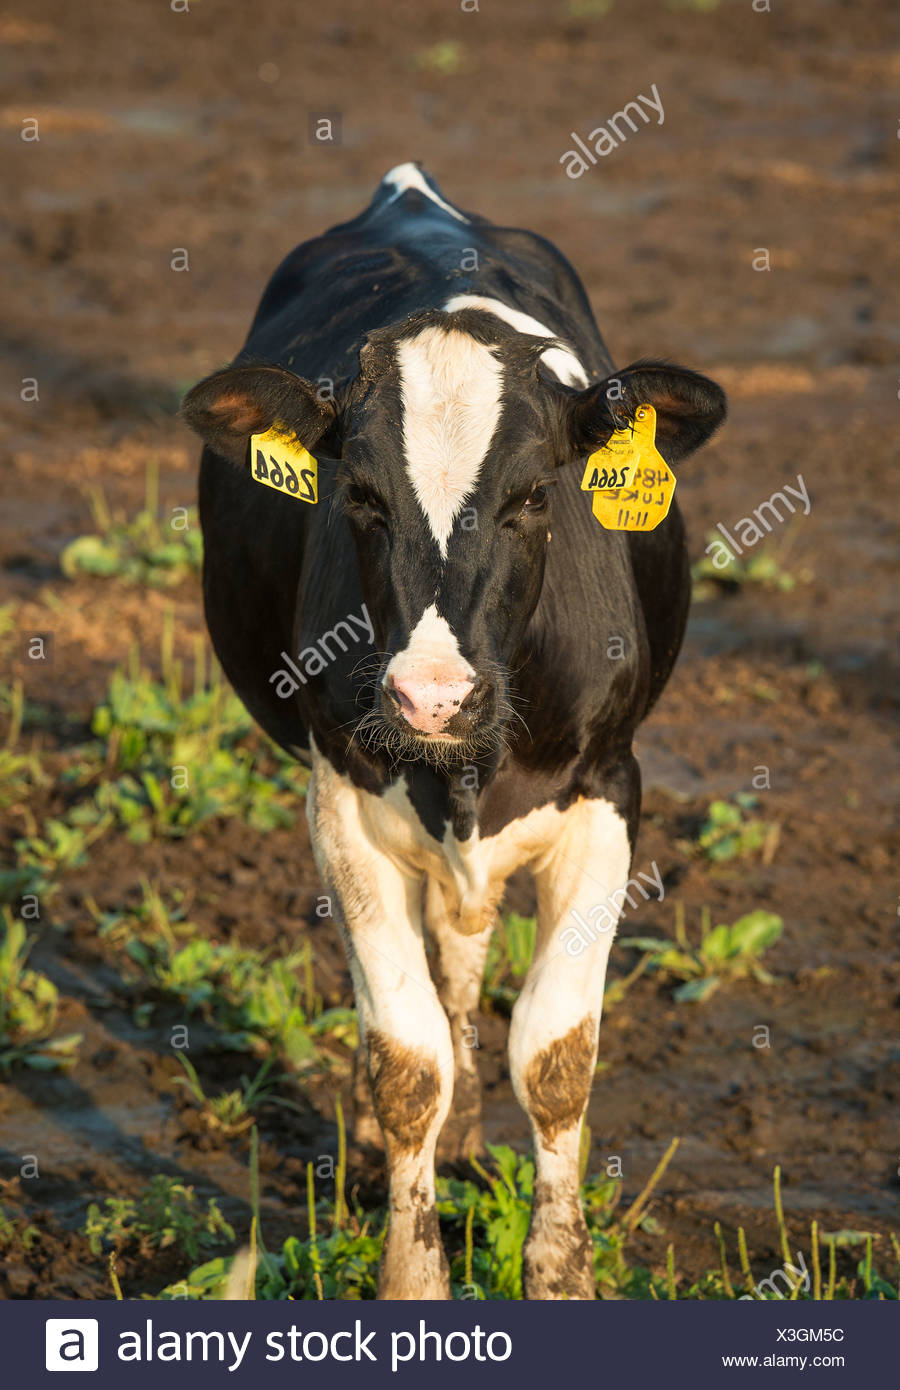 Cow tagged for identification. - Stock Image